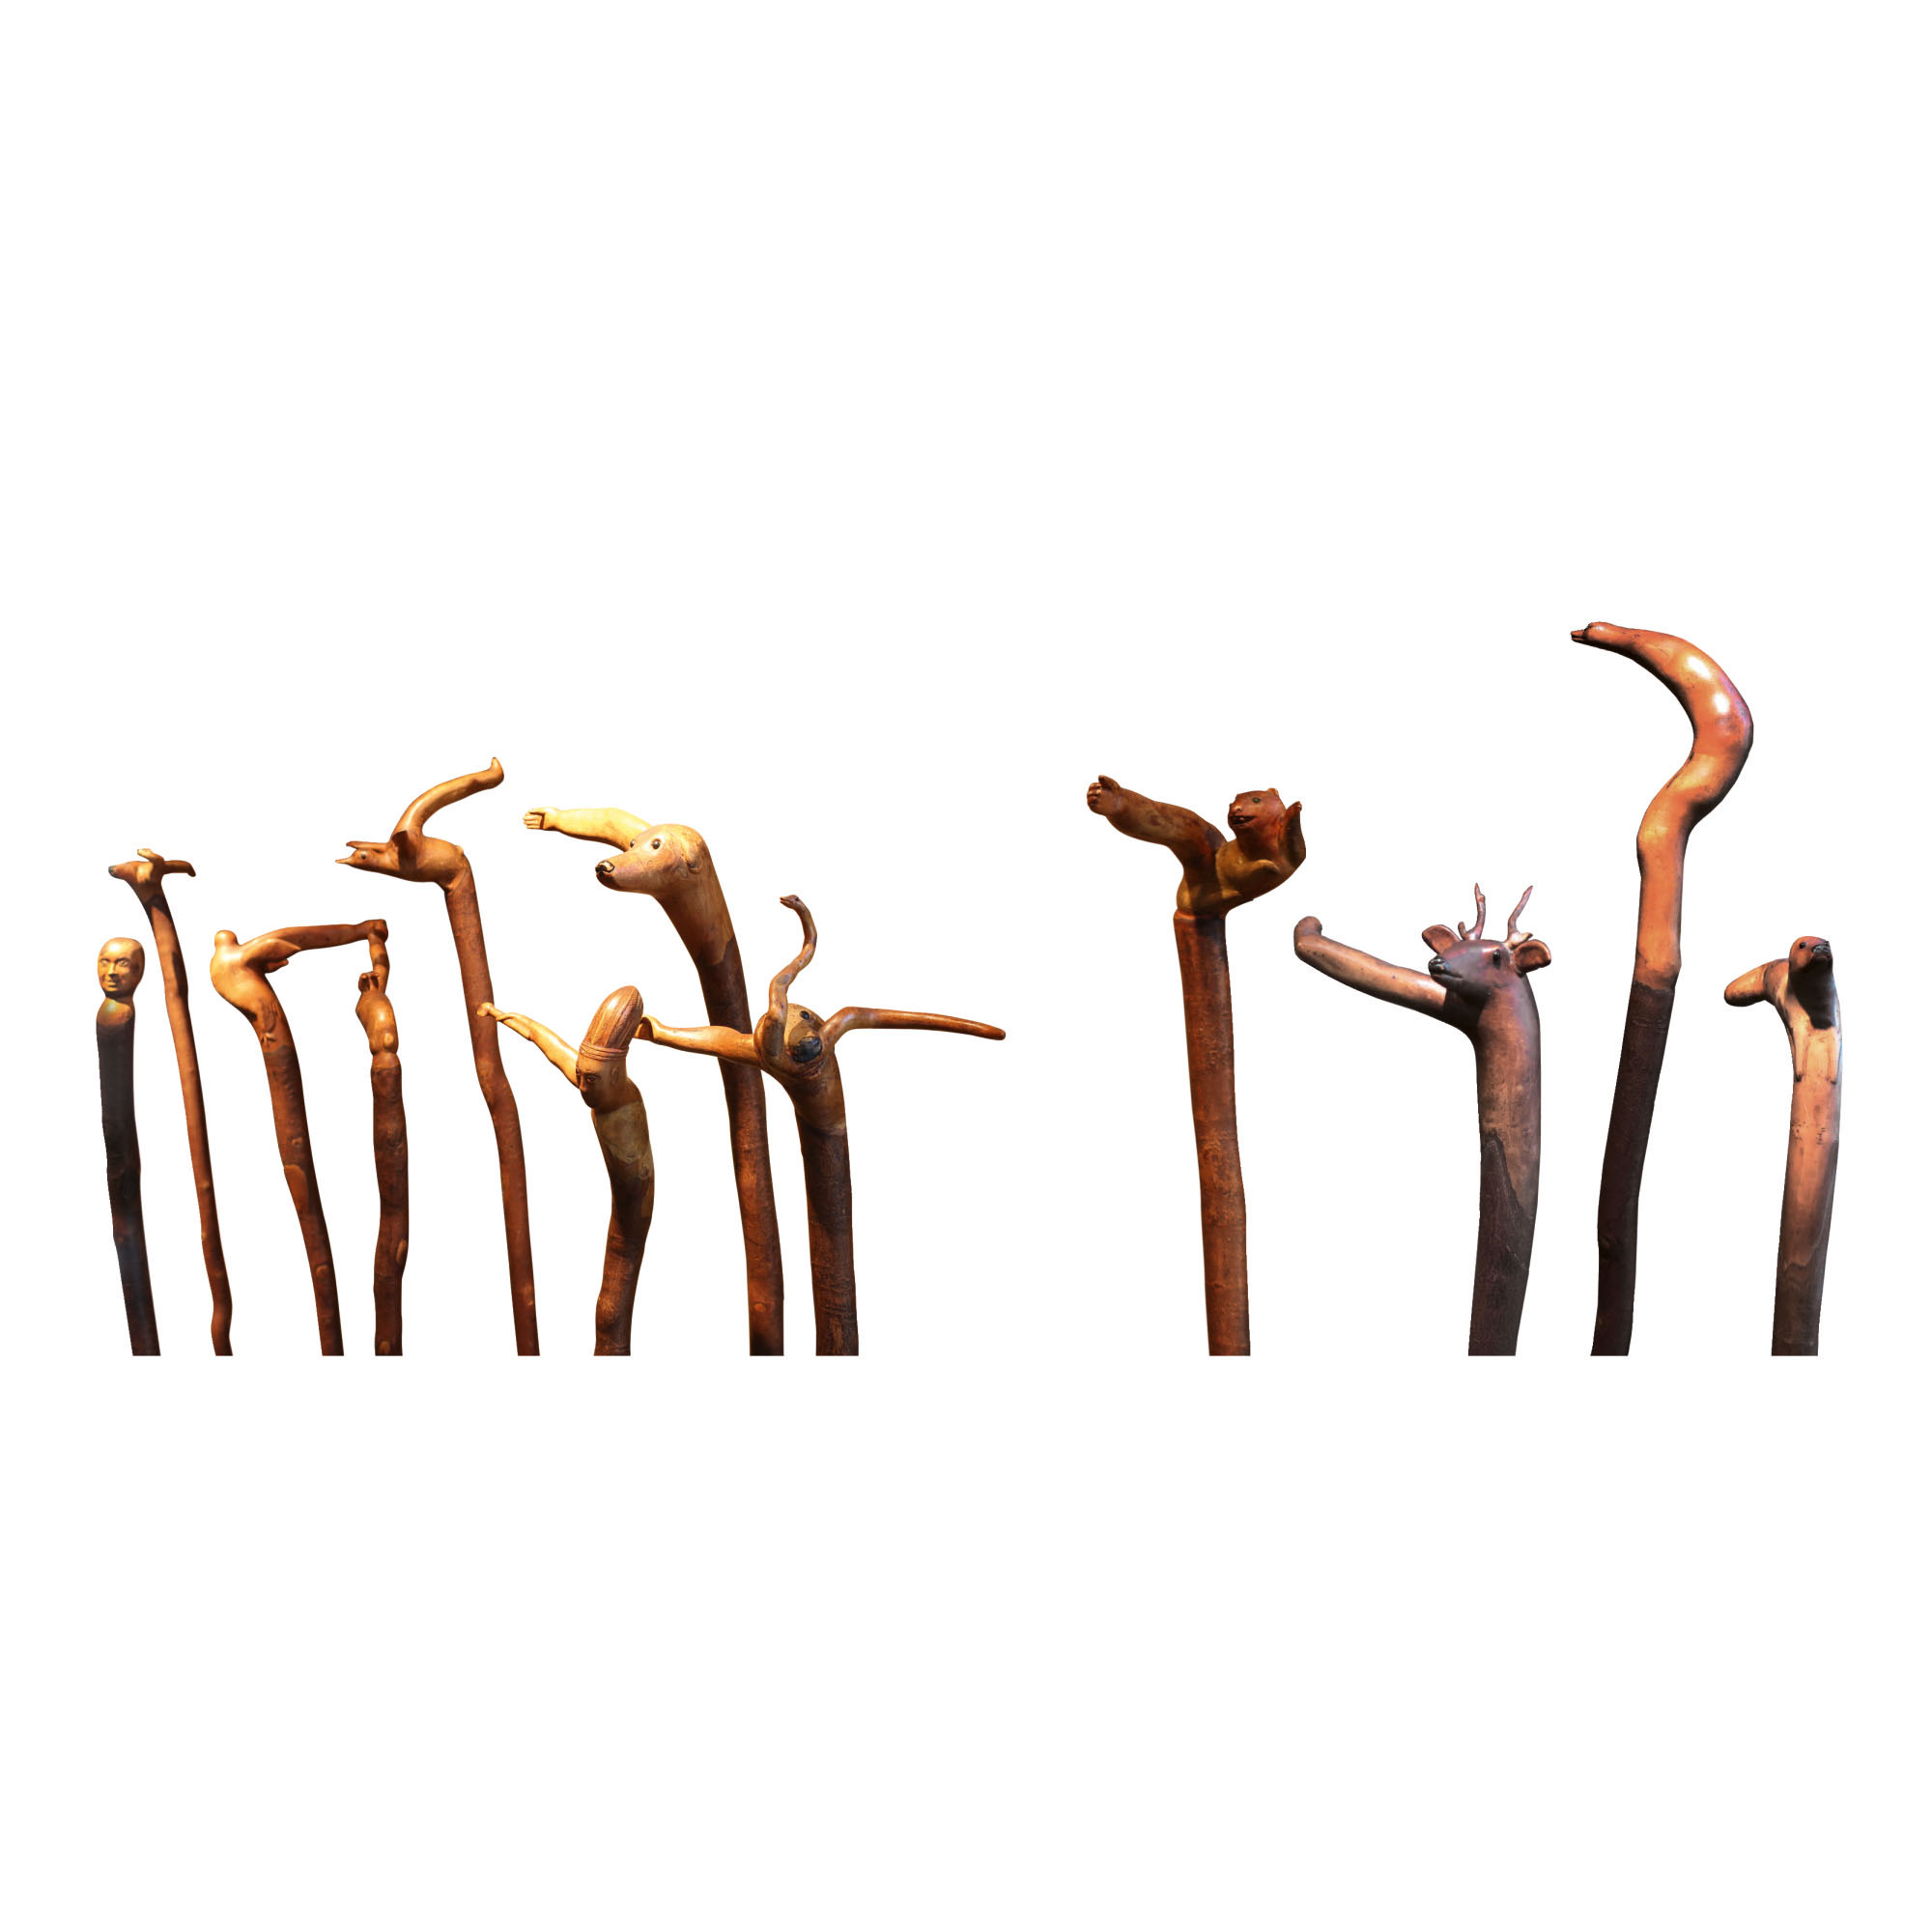 TWELVE EXCEPTIONAL FIGURATIVELY CARVED WOODEN WALKING STICKS, 20TH CENTURY